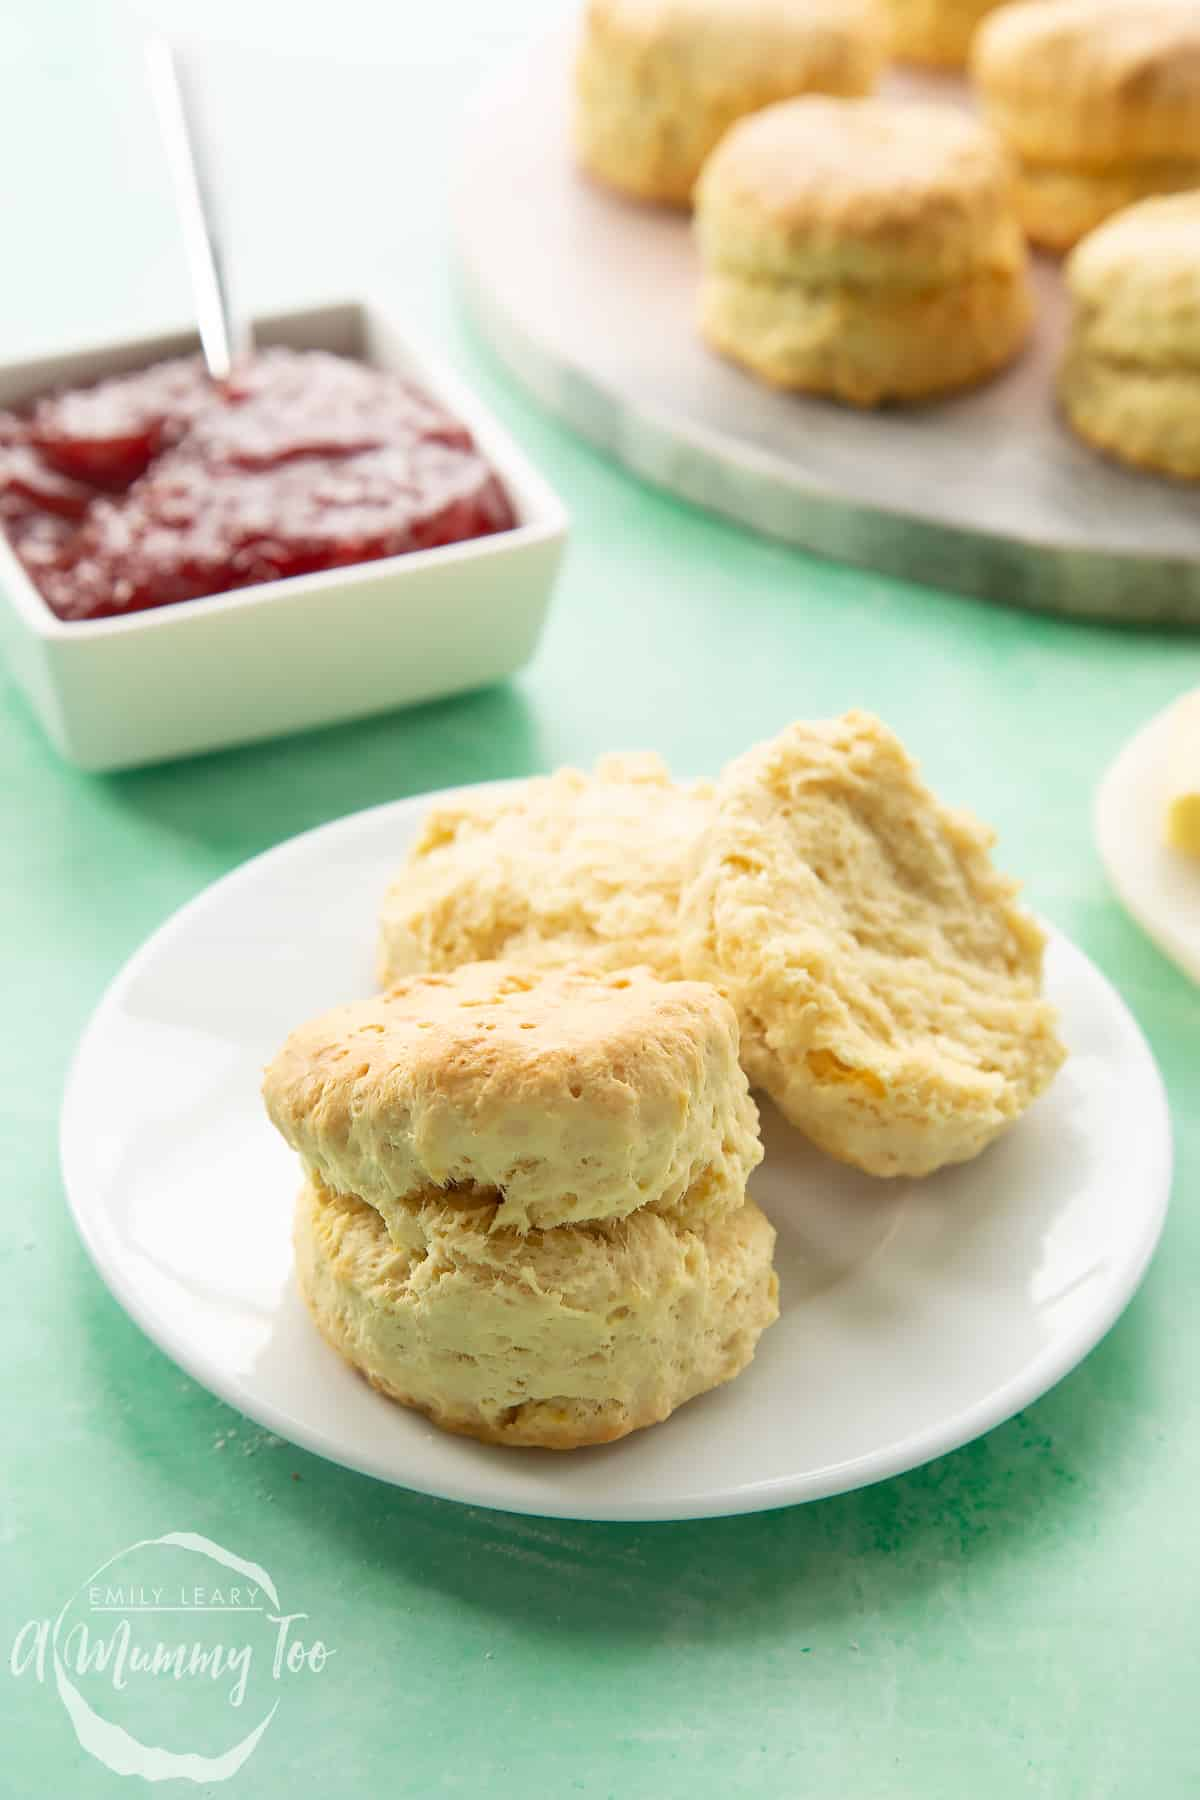 Two dairy free scones on a white plate.